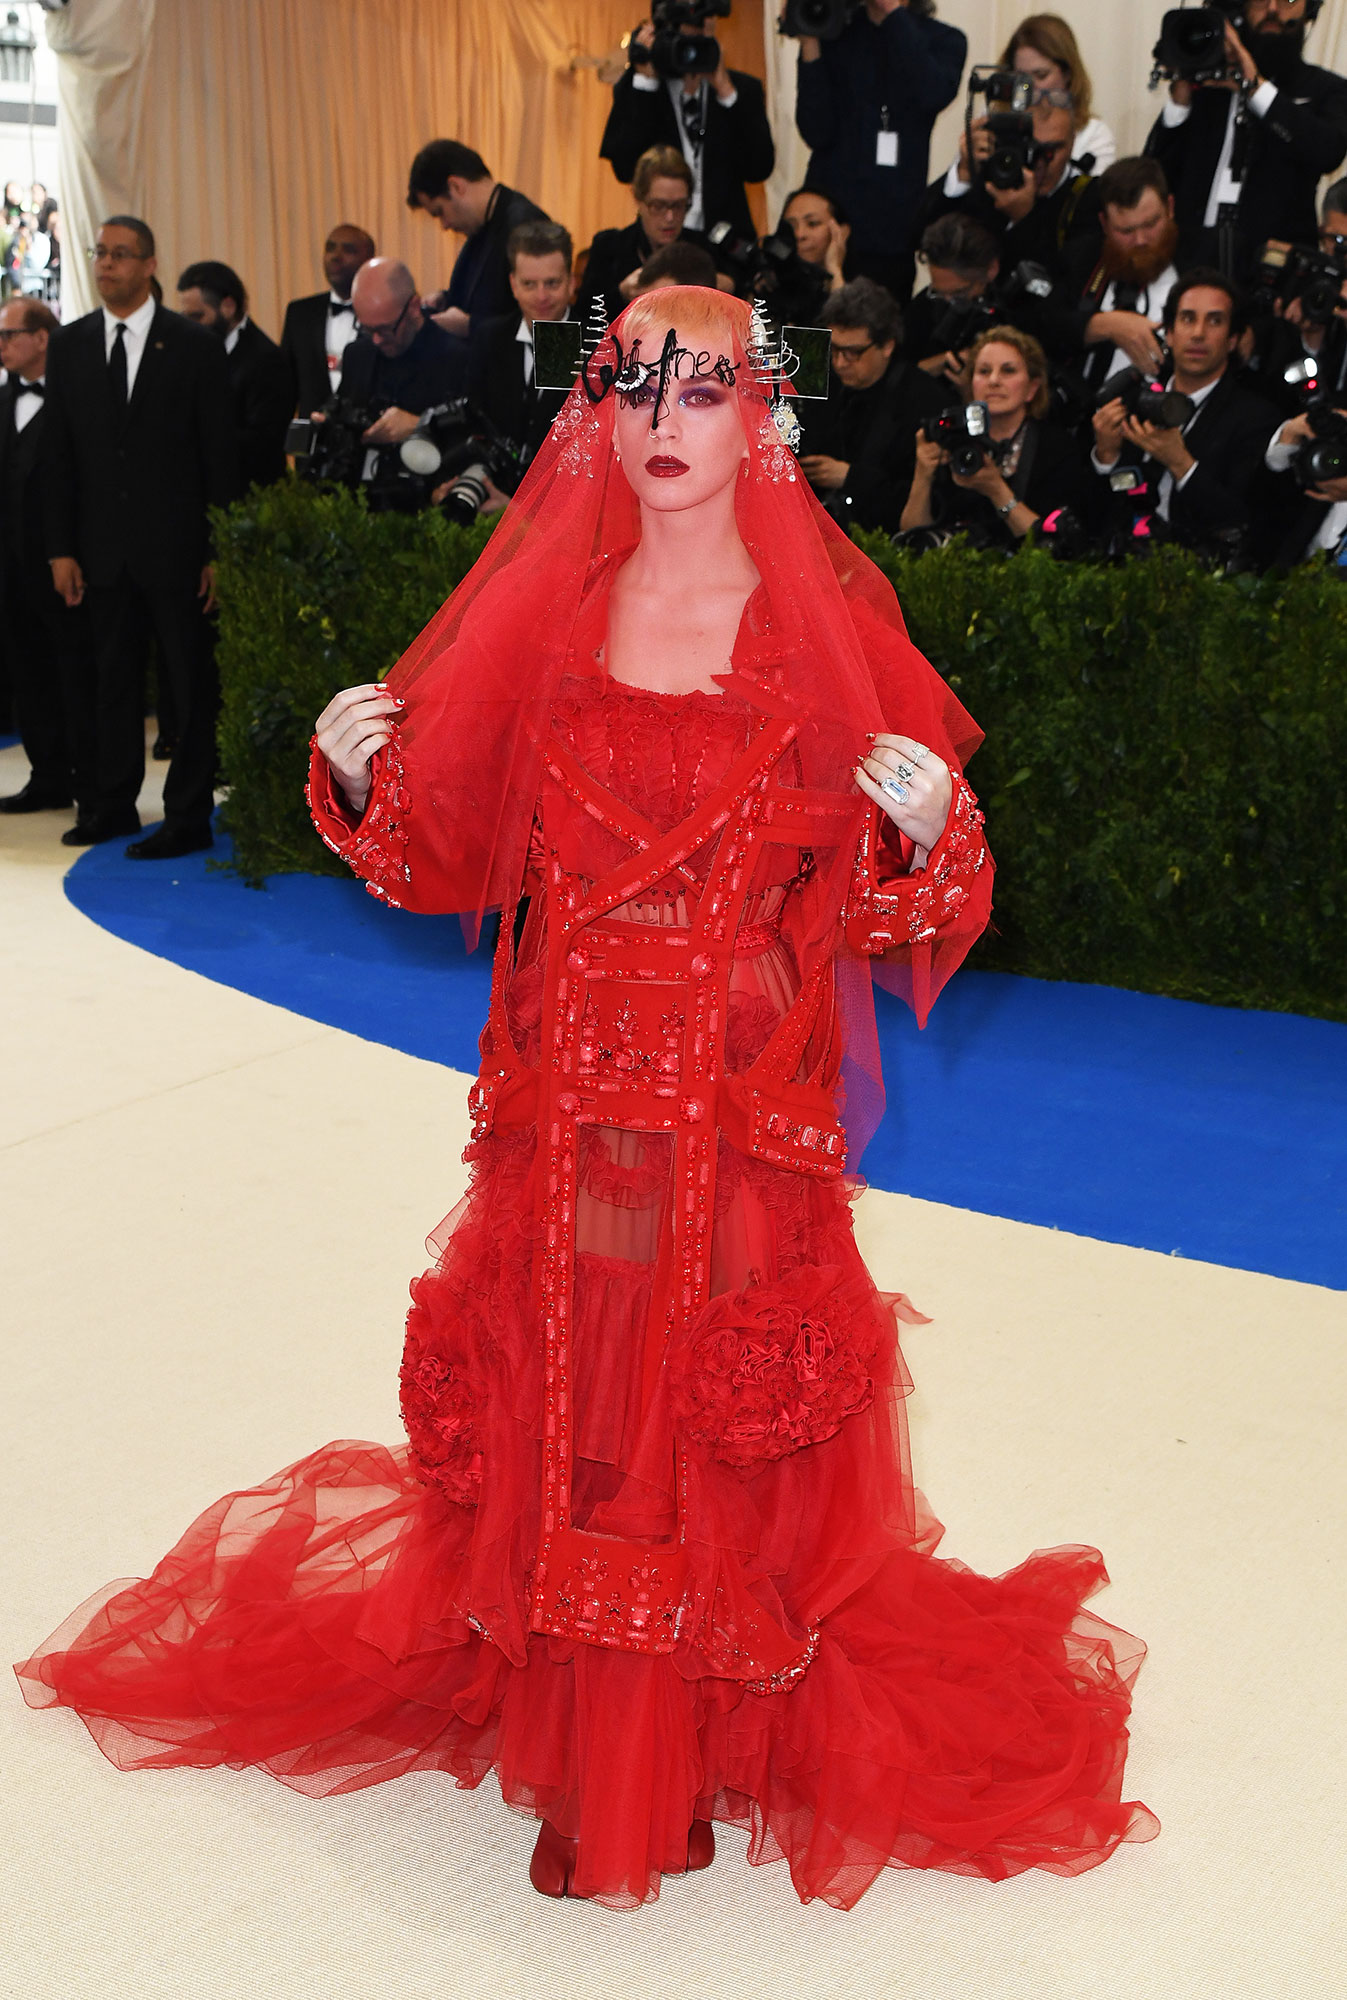 Katy Perry Wore Some of Her Wackiest Outfits Ever to the 2019 Met Gala - With a veil over her face, the songstress wore an avant guard John Galliano red tulle dress to the 2017 Met Gala.